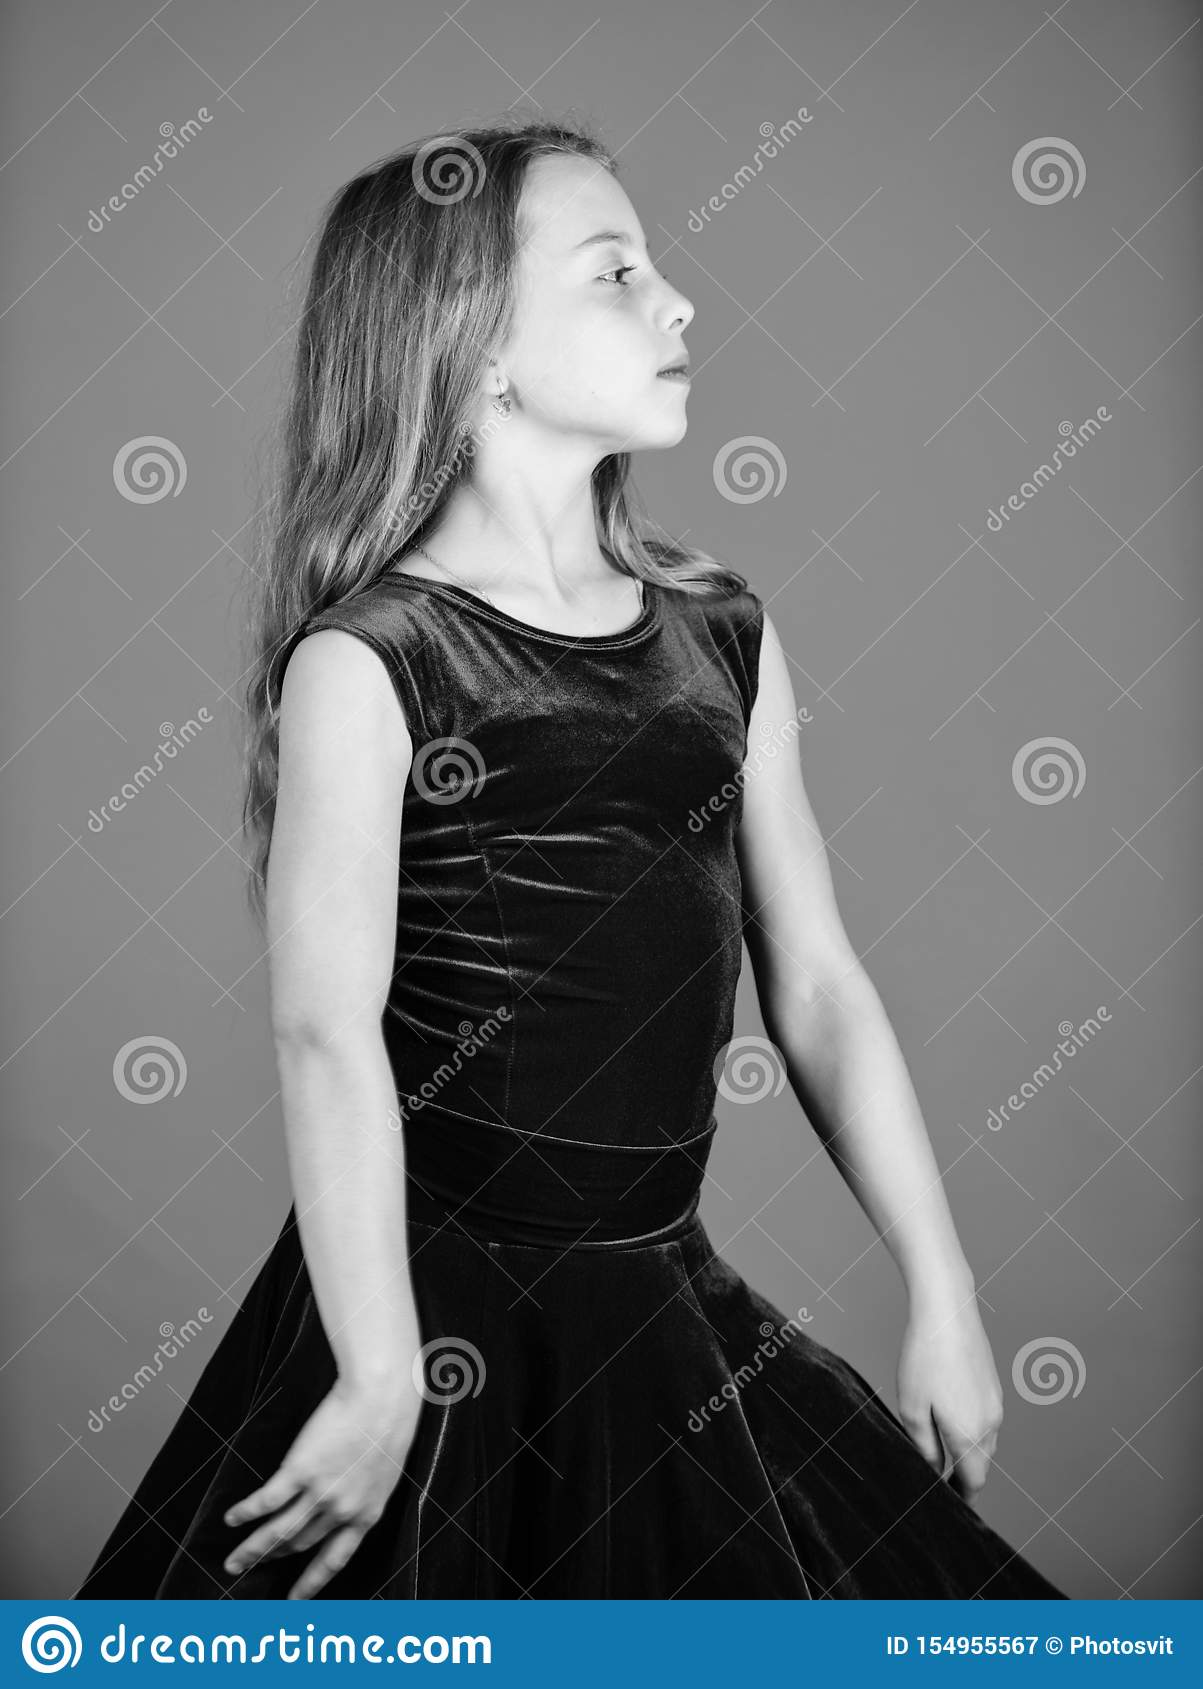 Ballroom dancewear fashion concept. Kid dancer satisfied with concert outfit. Clothes for ballroom dance. Ballroom